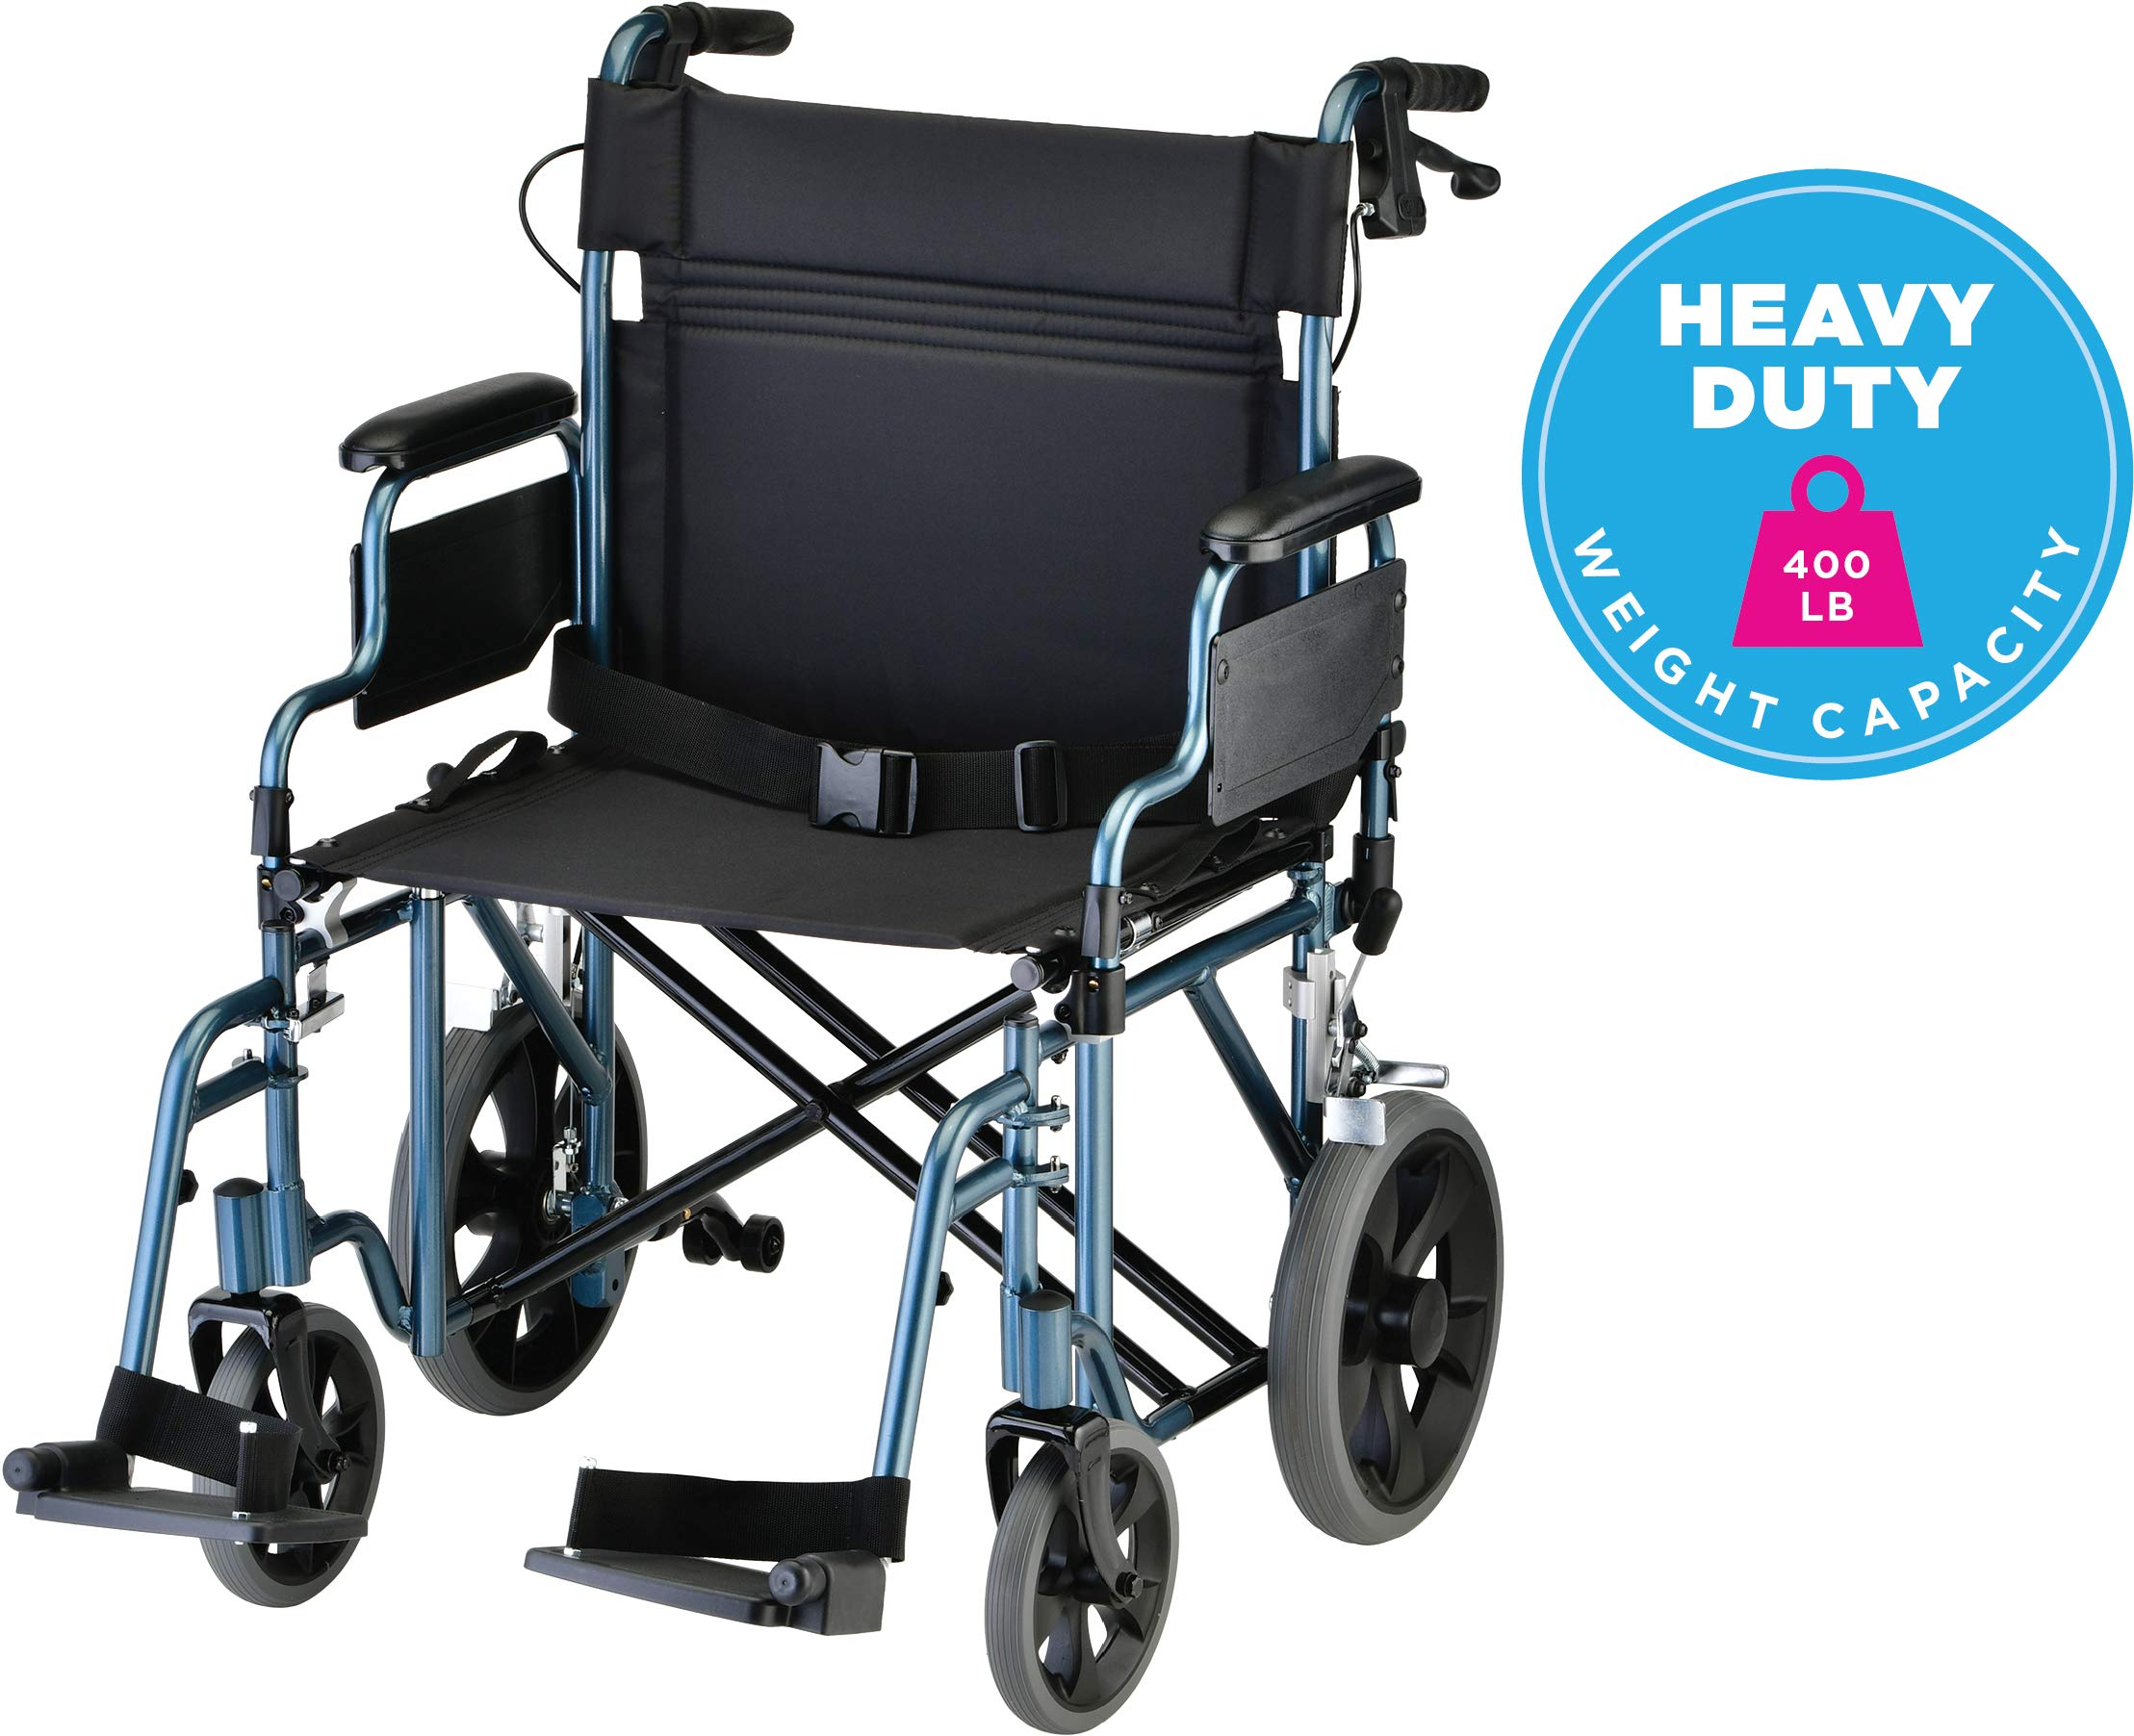 NOVA Bariatric Transport Chair with Locking Hand Brakes, Heavy Duty and Extra Wide Wheelchair with Removable & Flip Up Arms for Easy Transfer, Anti-Tippers Included, 400 lb. Weight Capacity, Blue by NOVA Medical Products